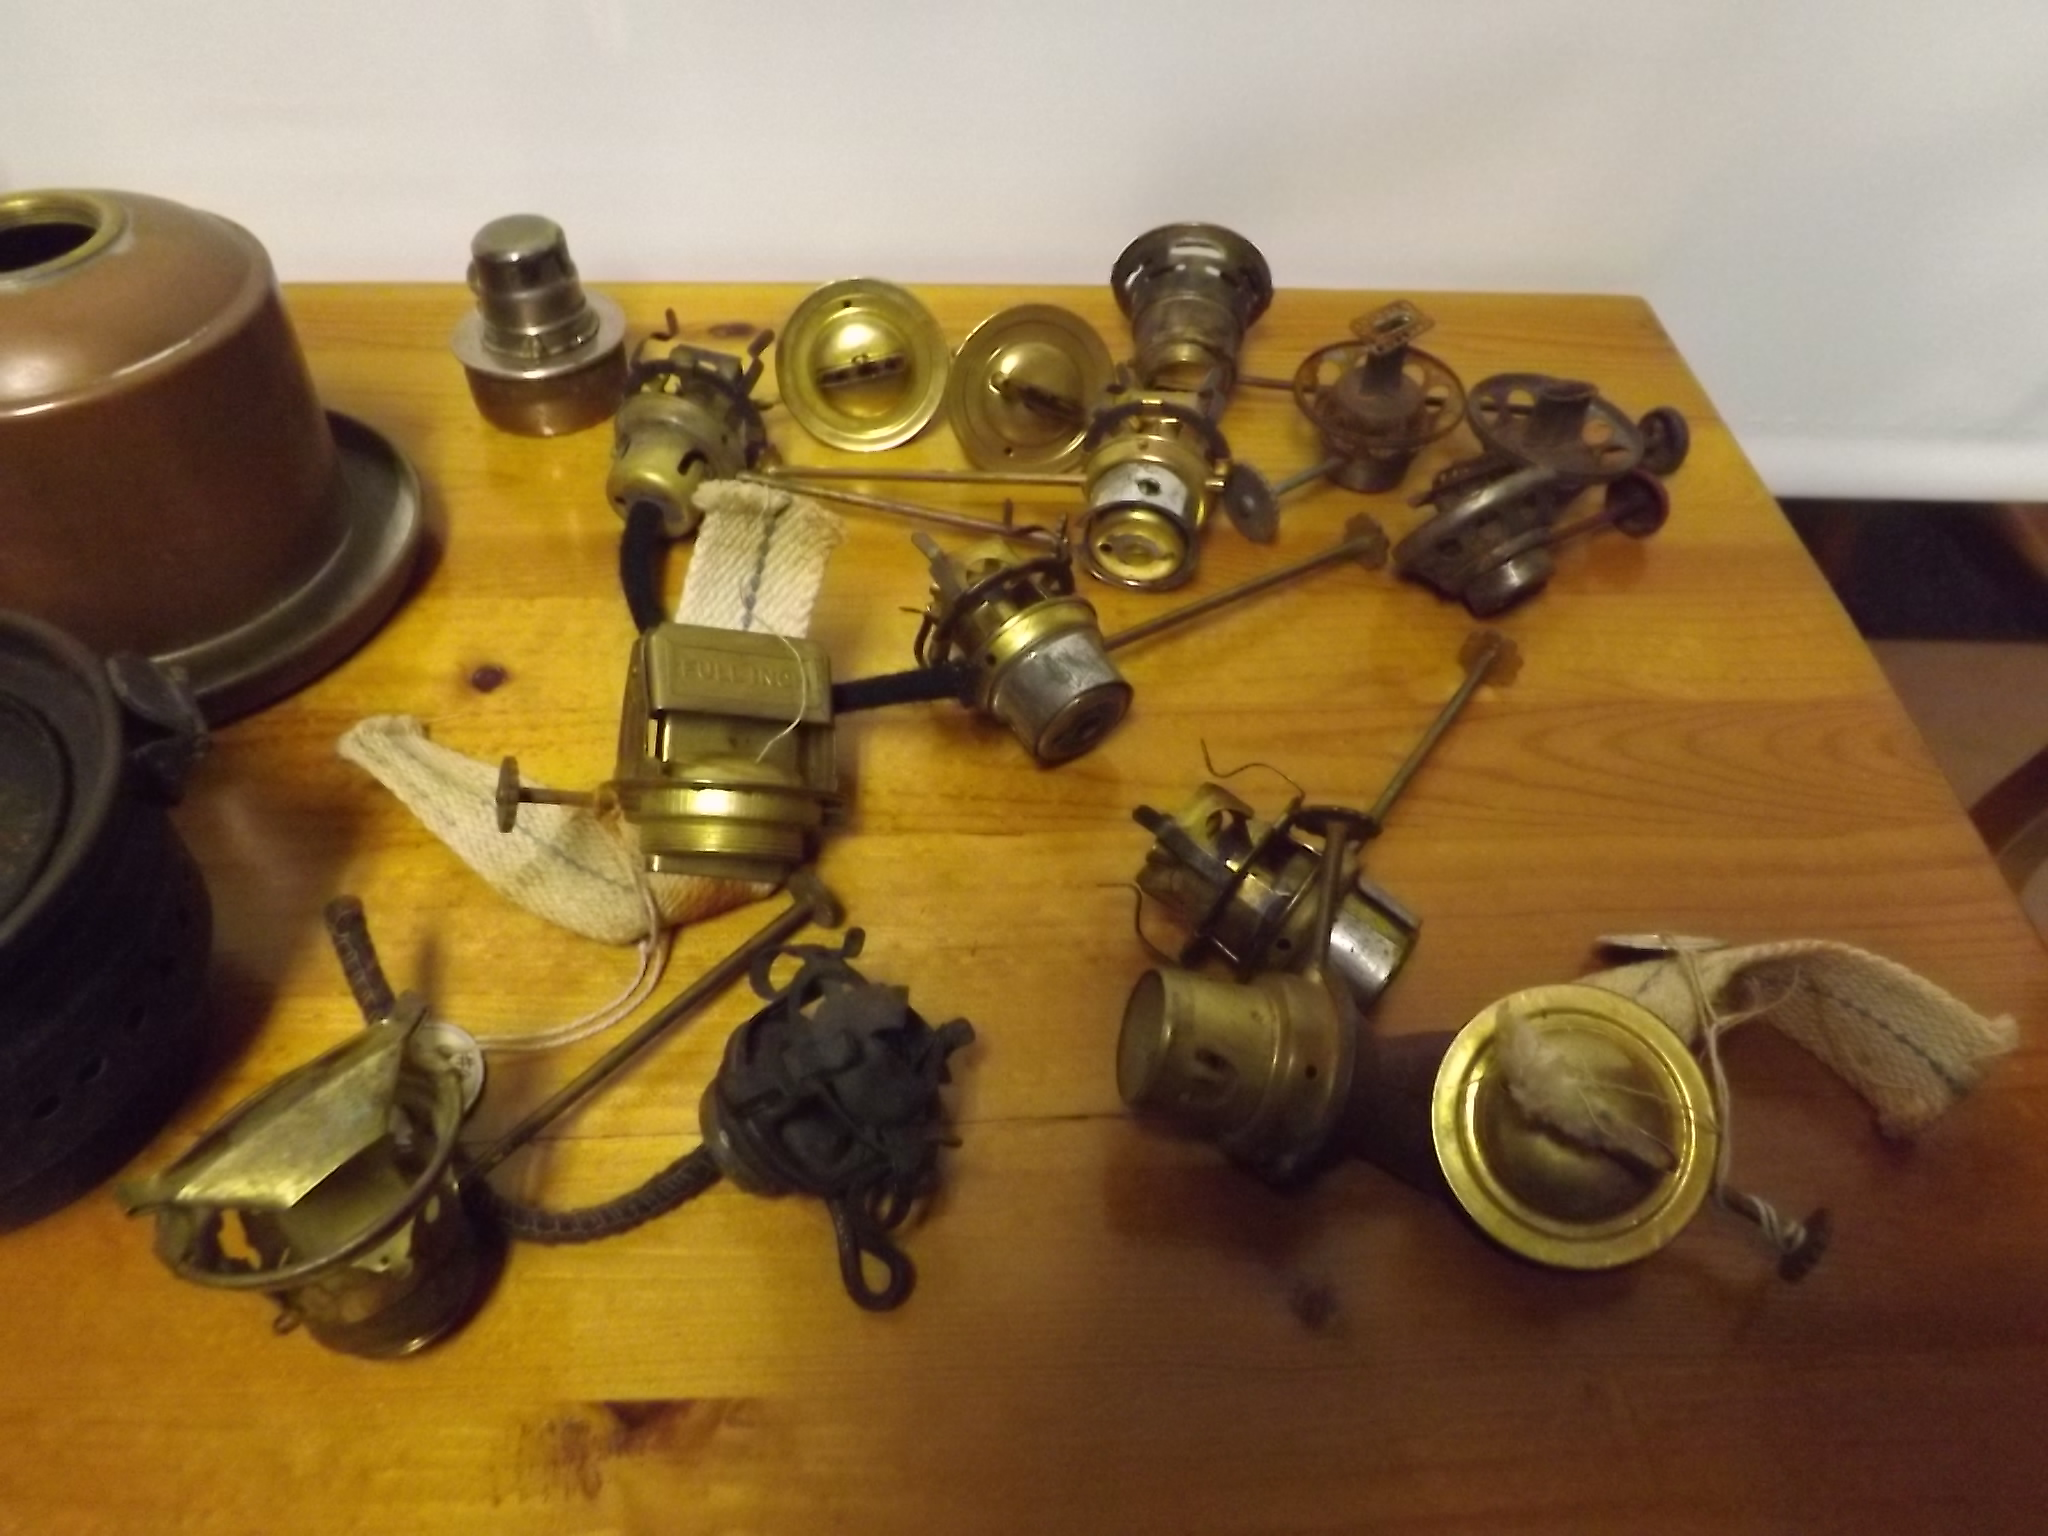 Railroad lamp/lantern burners